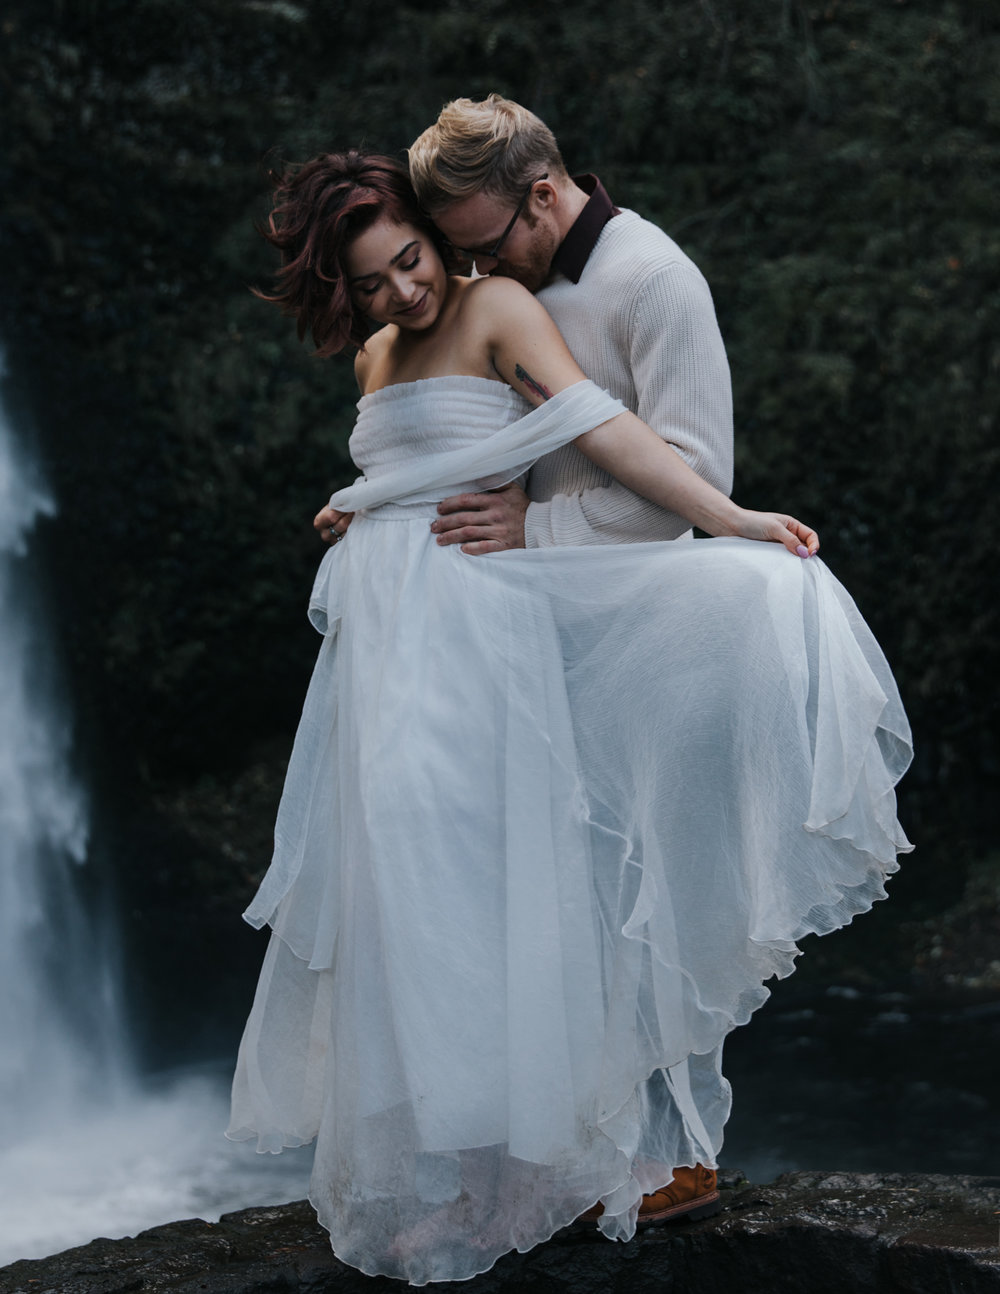 Couple snuggling, Adventurous Outdoor + Waterfall Couples Session | Croative Photography